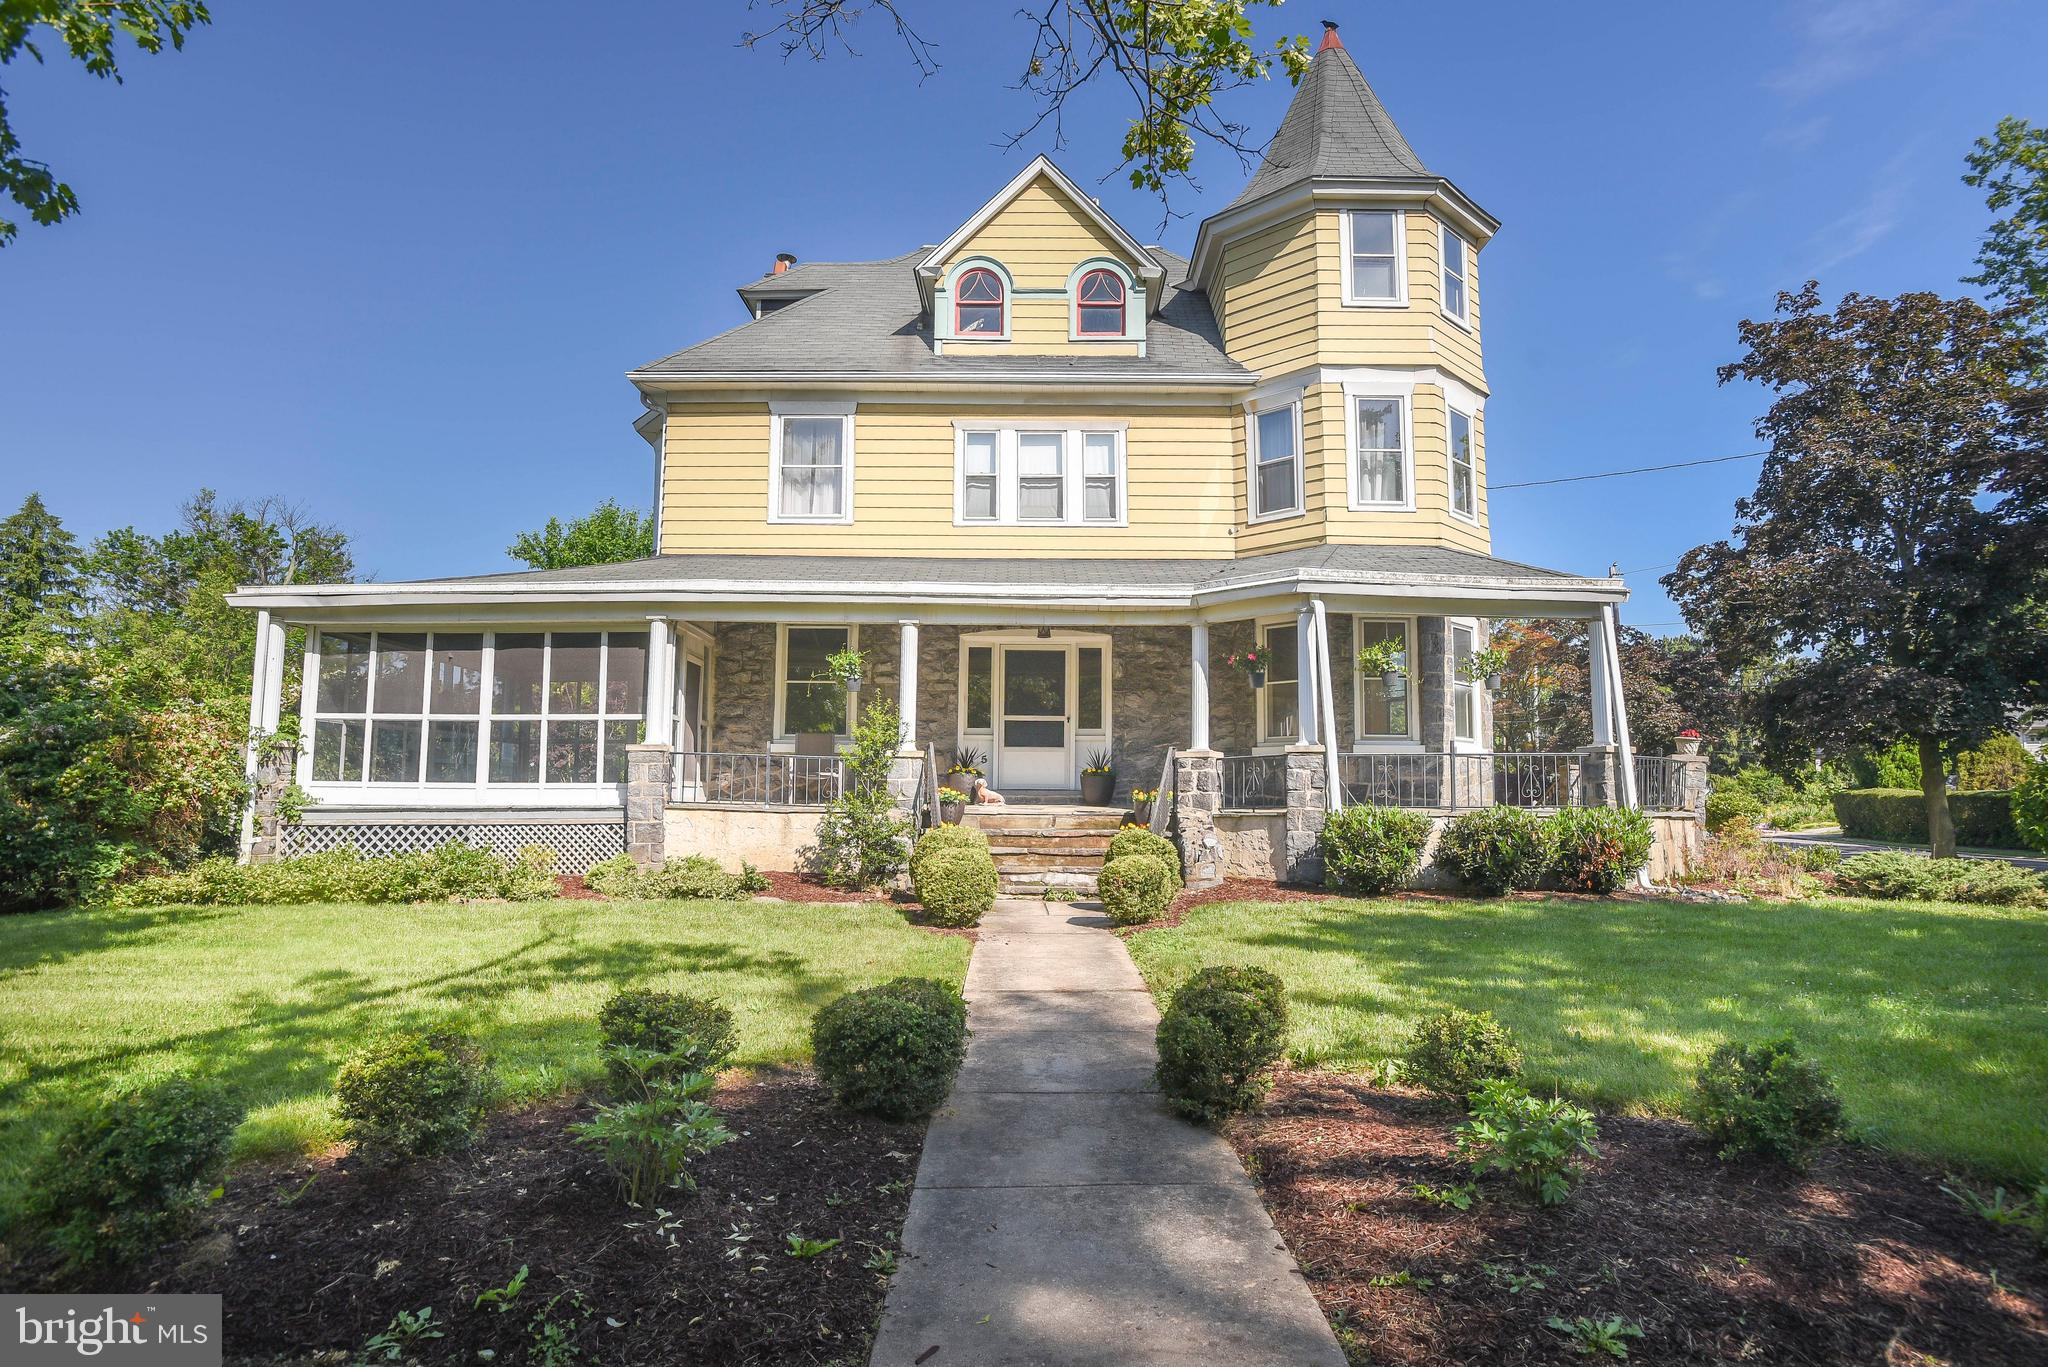 15 W SELLERS AVENUE, RIDLEY PARK, PA 19078